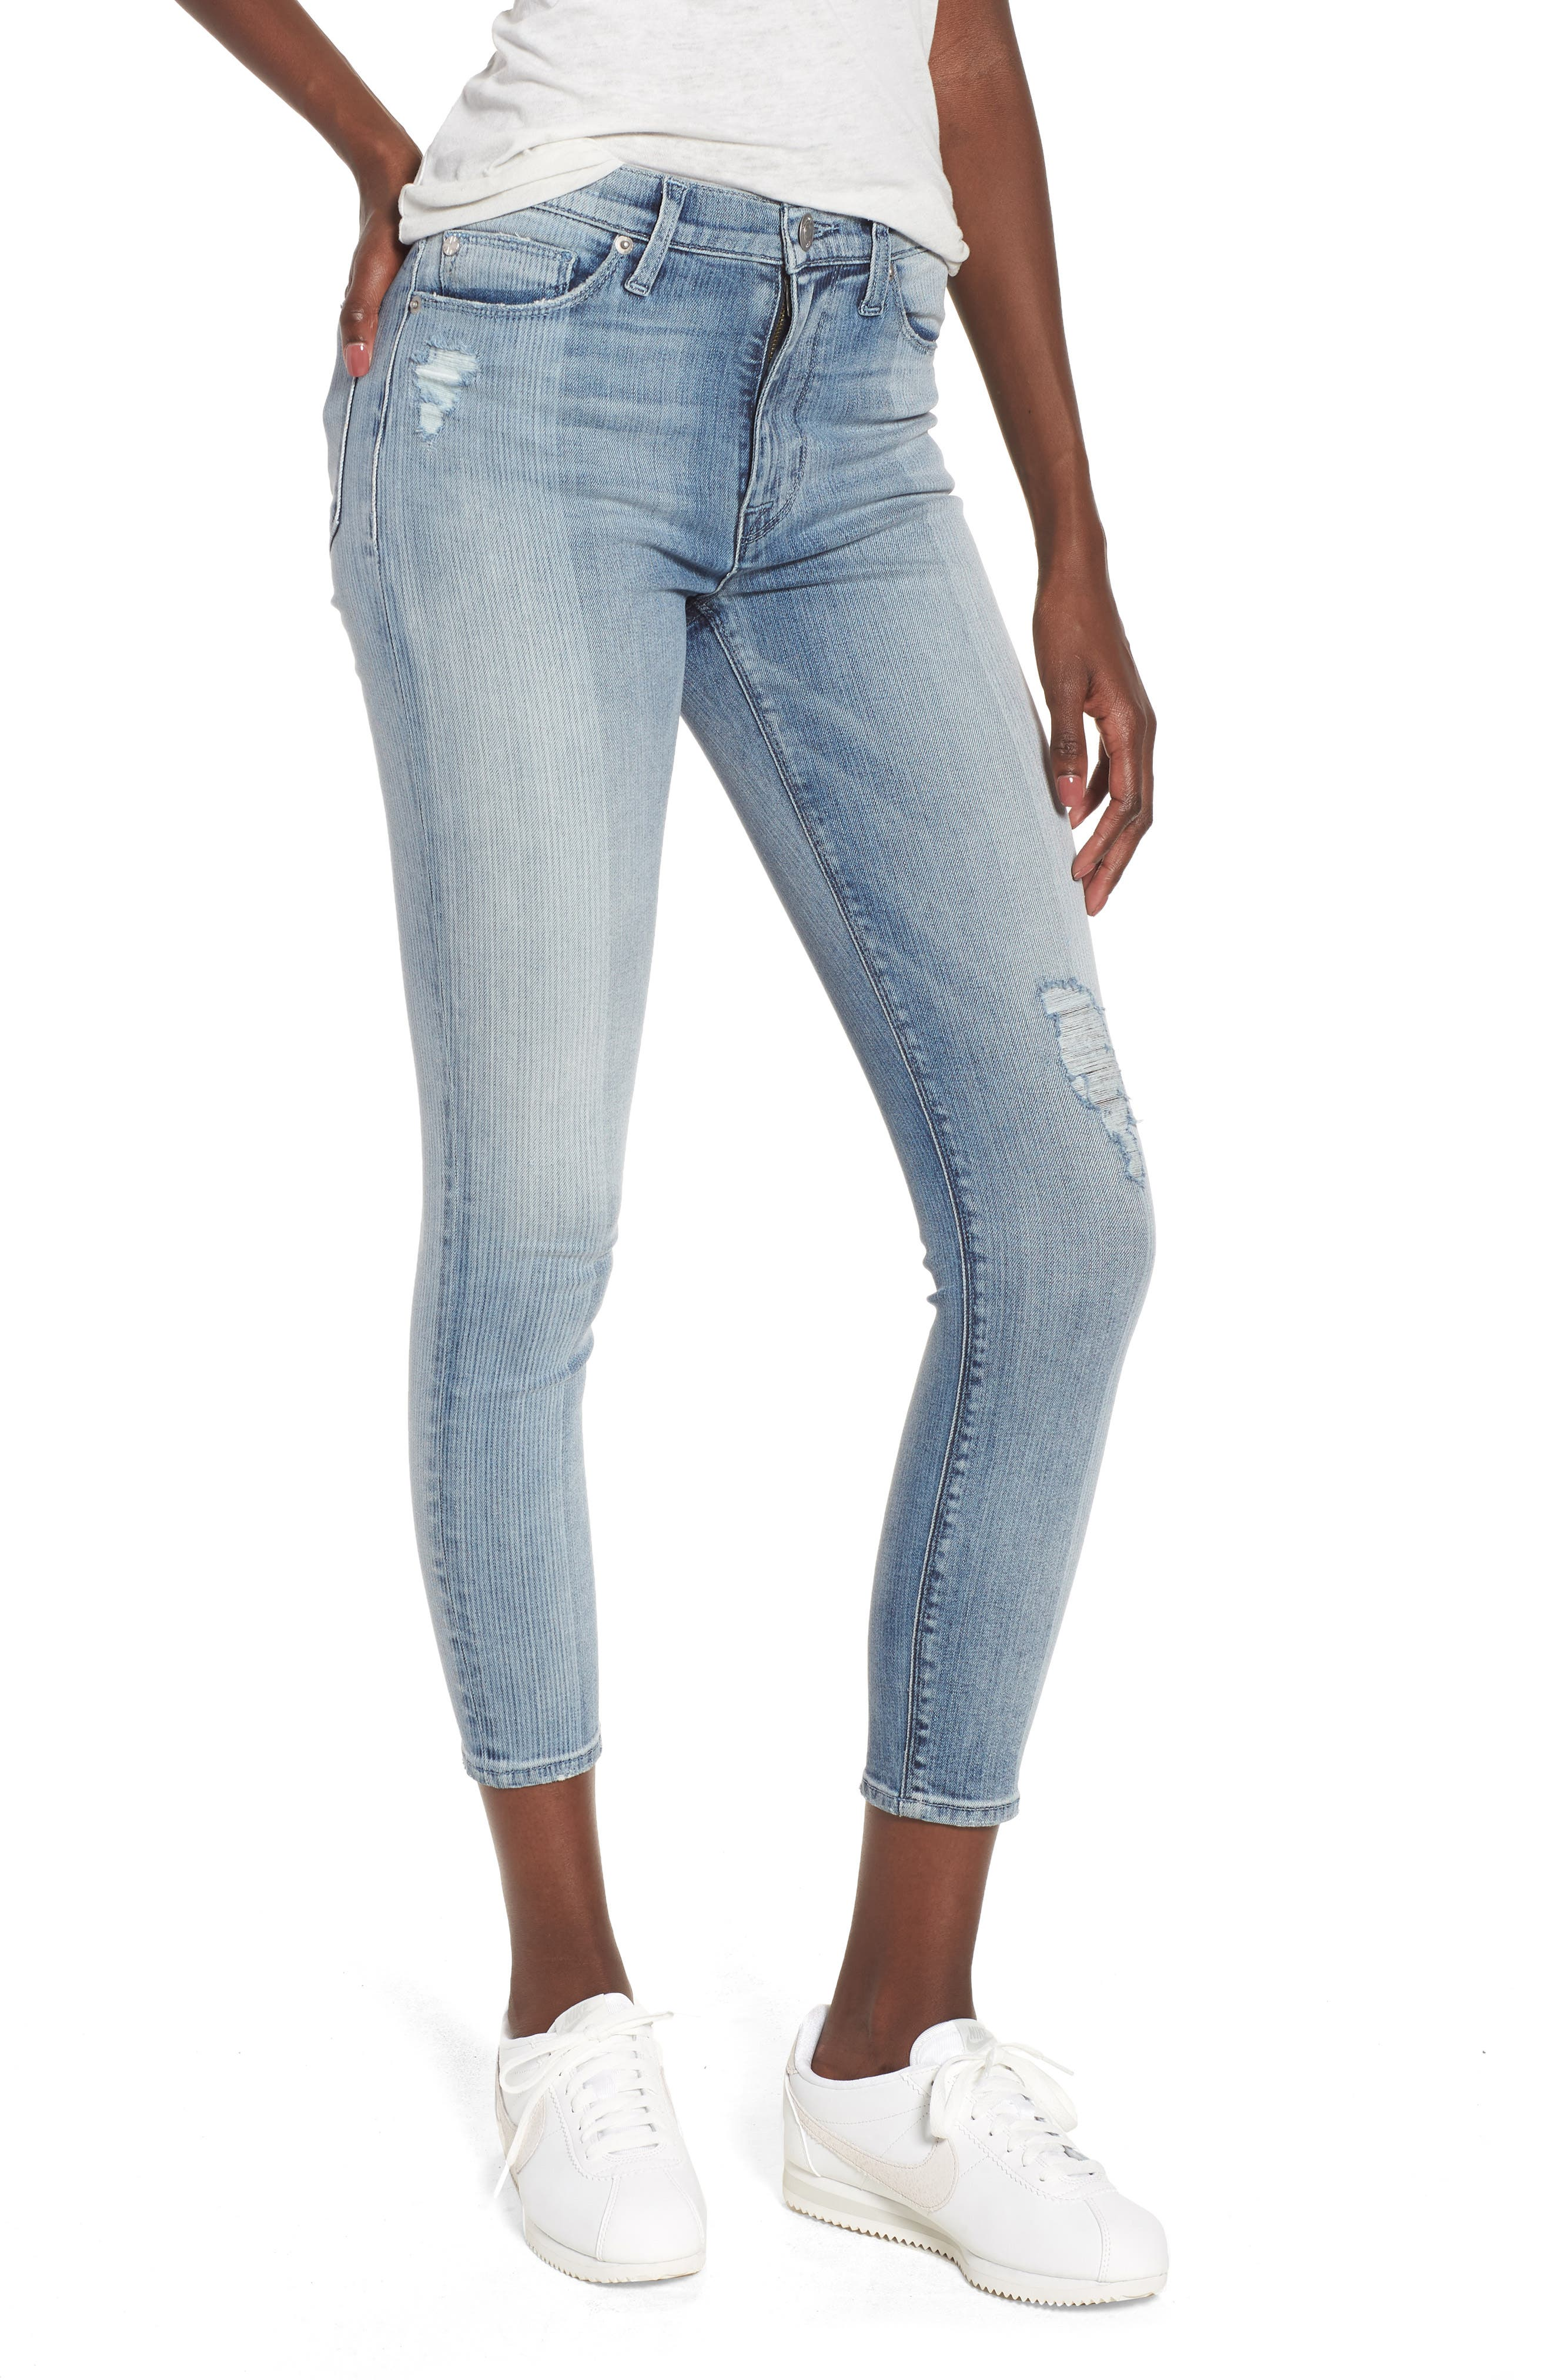 Barbara High Waist Crop Skinny Jeans,                             Main thumbnail 1, color,                             Purest Expression